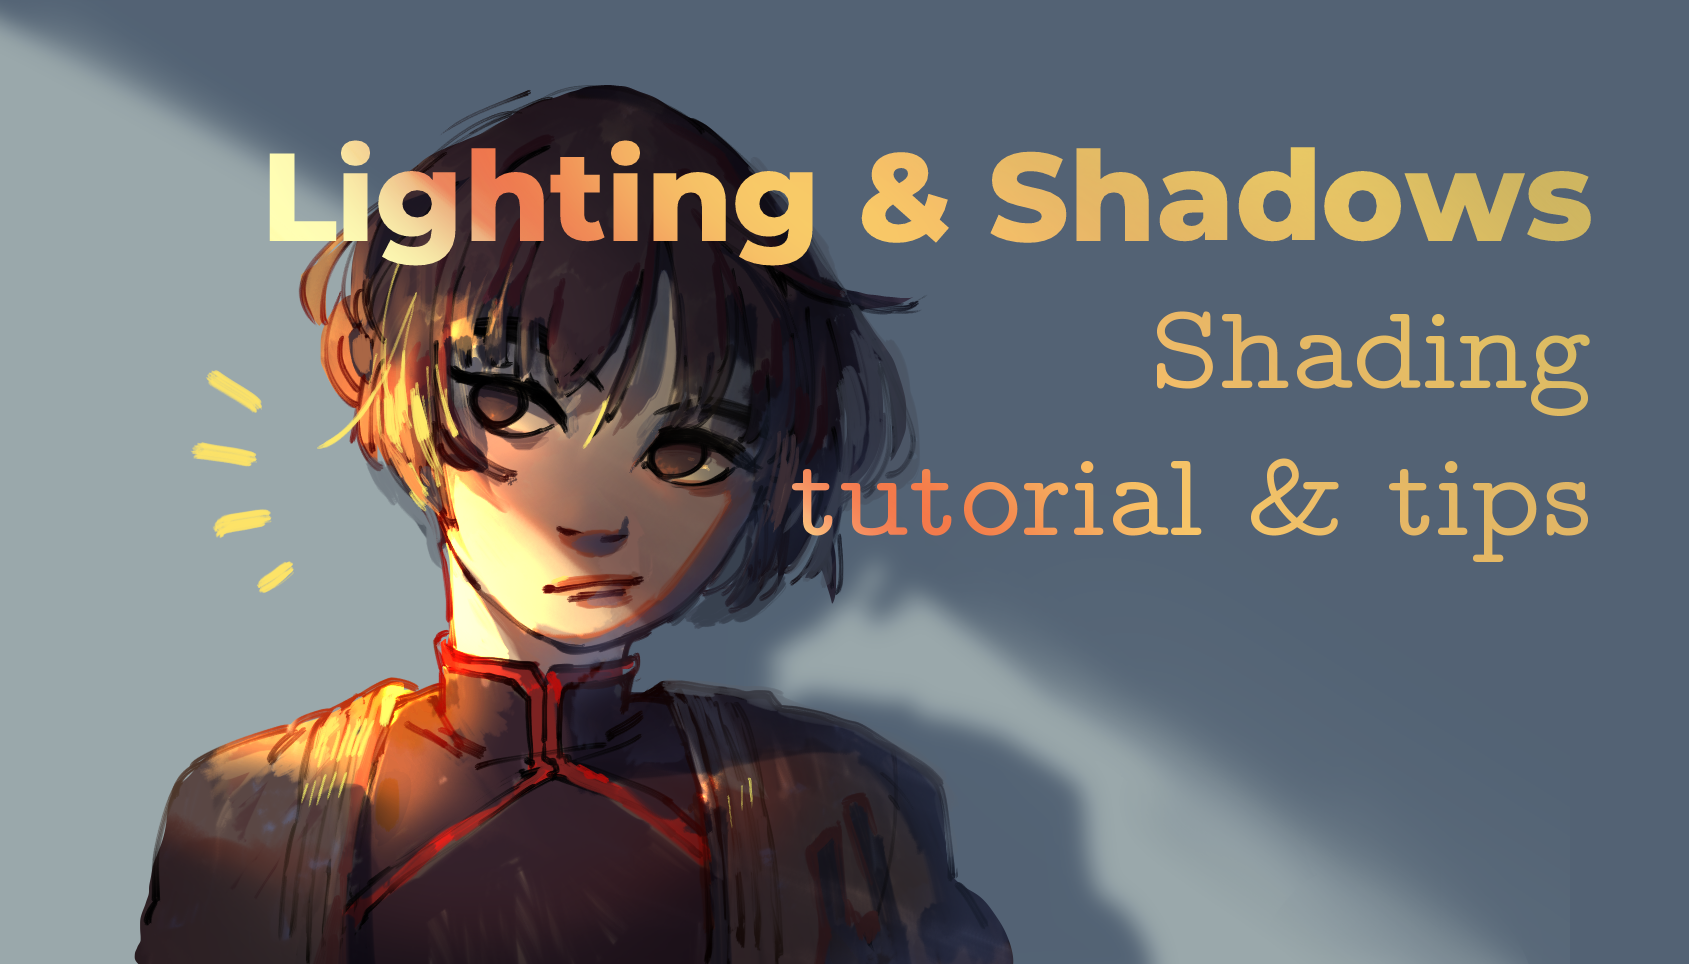 Building Shadows A Lighting And Shading Tutorial Colouring 1 By Weiweiweiwei Clip Studio Tips